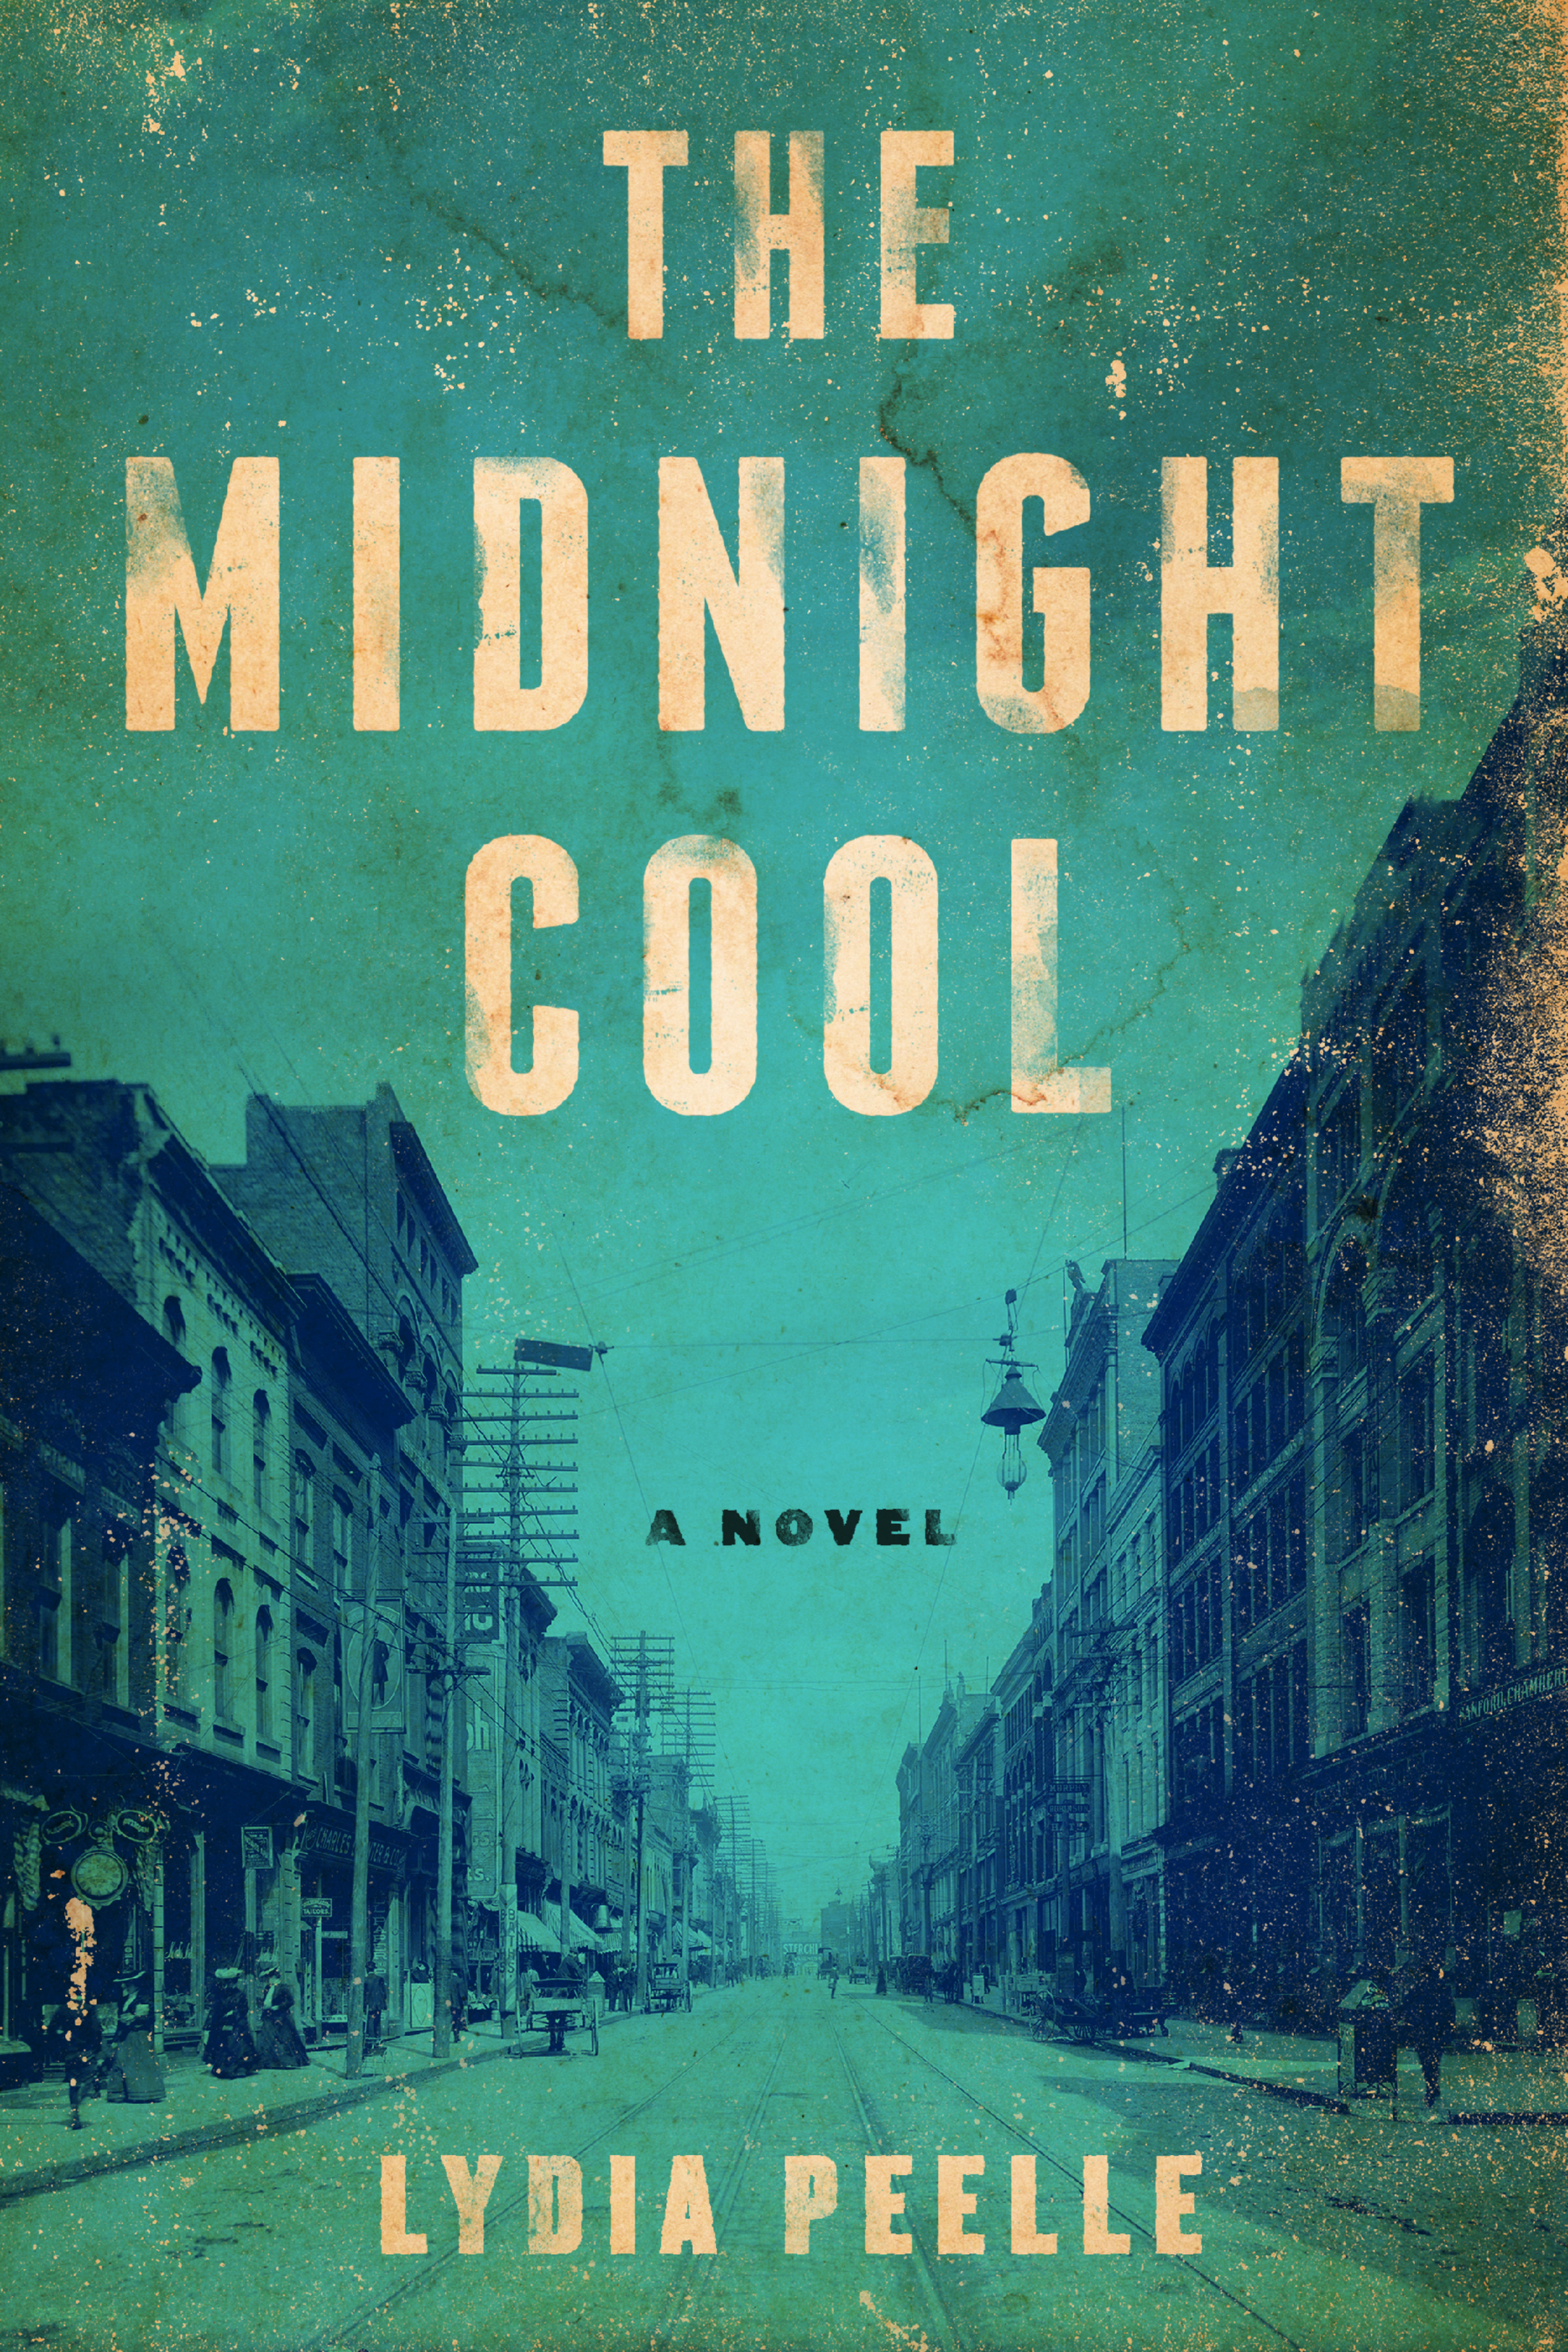 Book Launch: The Midnight Cool by Lydia Peelle, Featuring Music by Ketch Secor